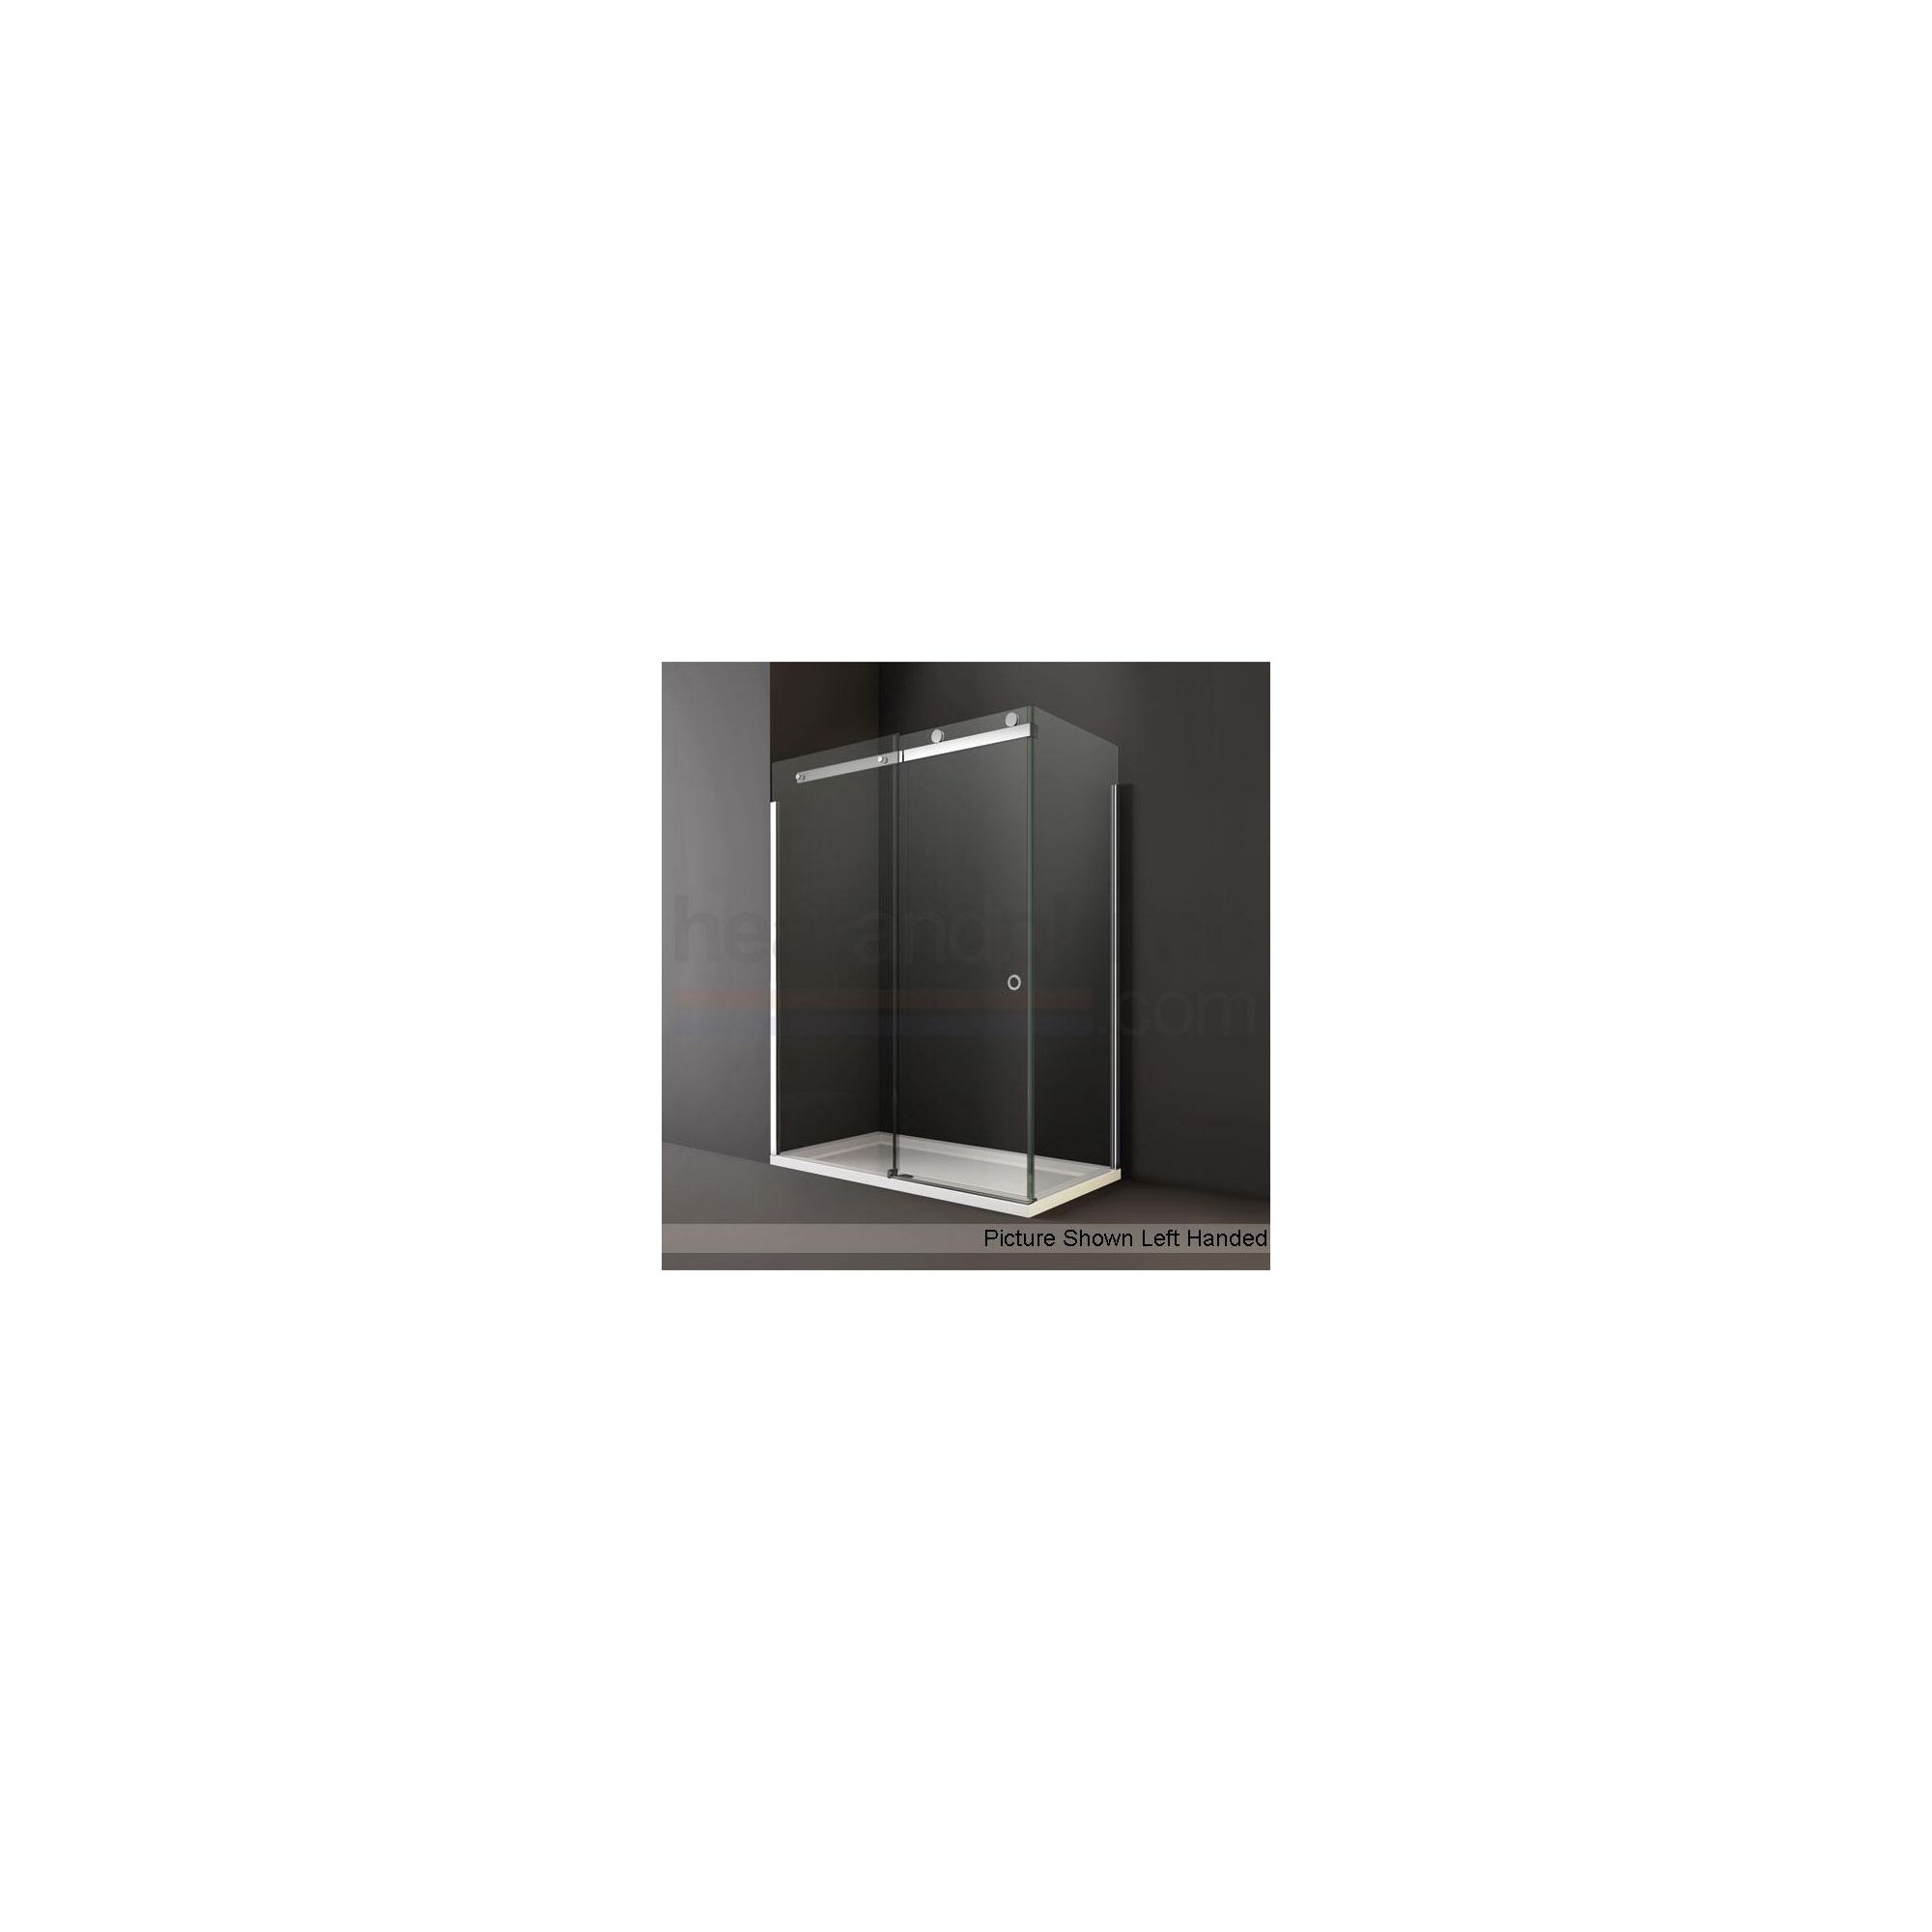 Merlyn Series 10 Sliding Door Shower Enclosure, 1200mm x 800mm, Low Profile Tray, 10mm Glass at Tesco Direct